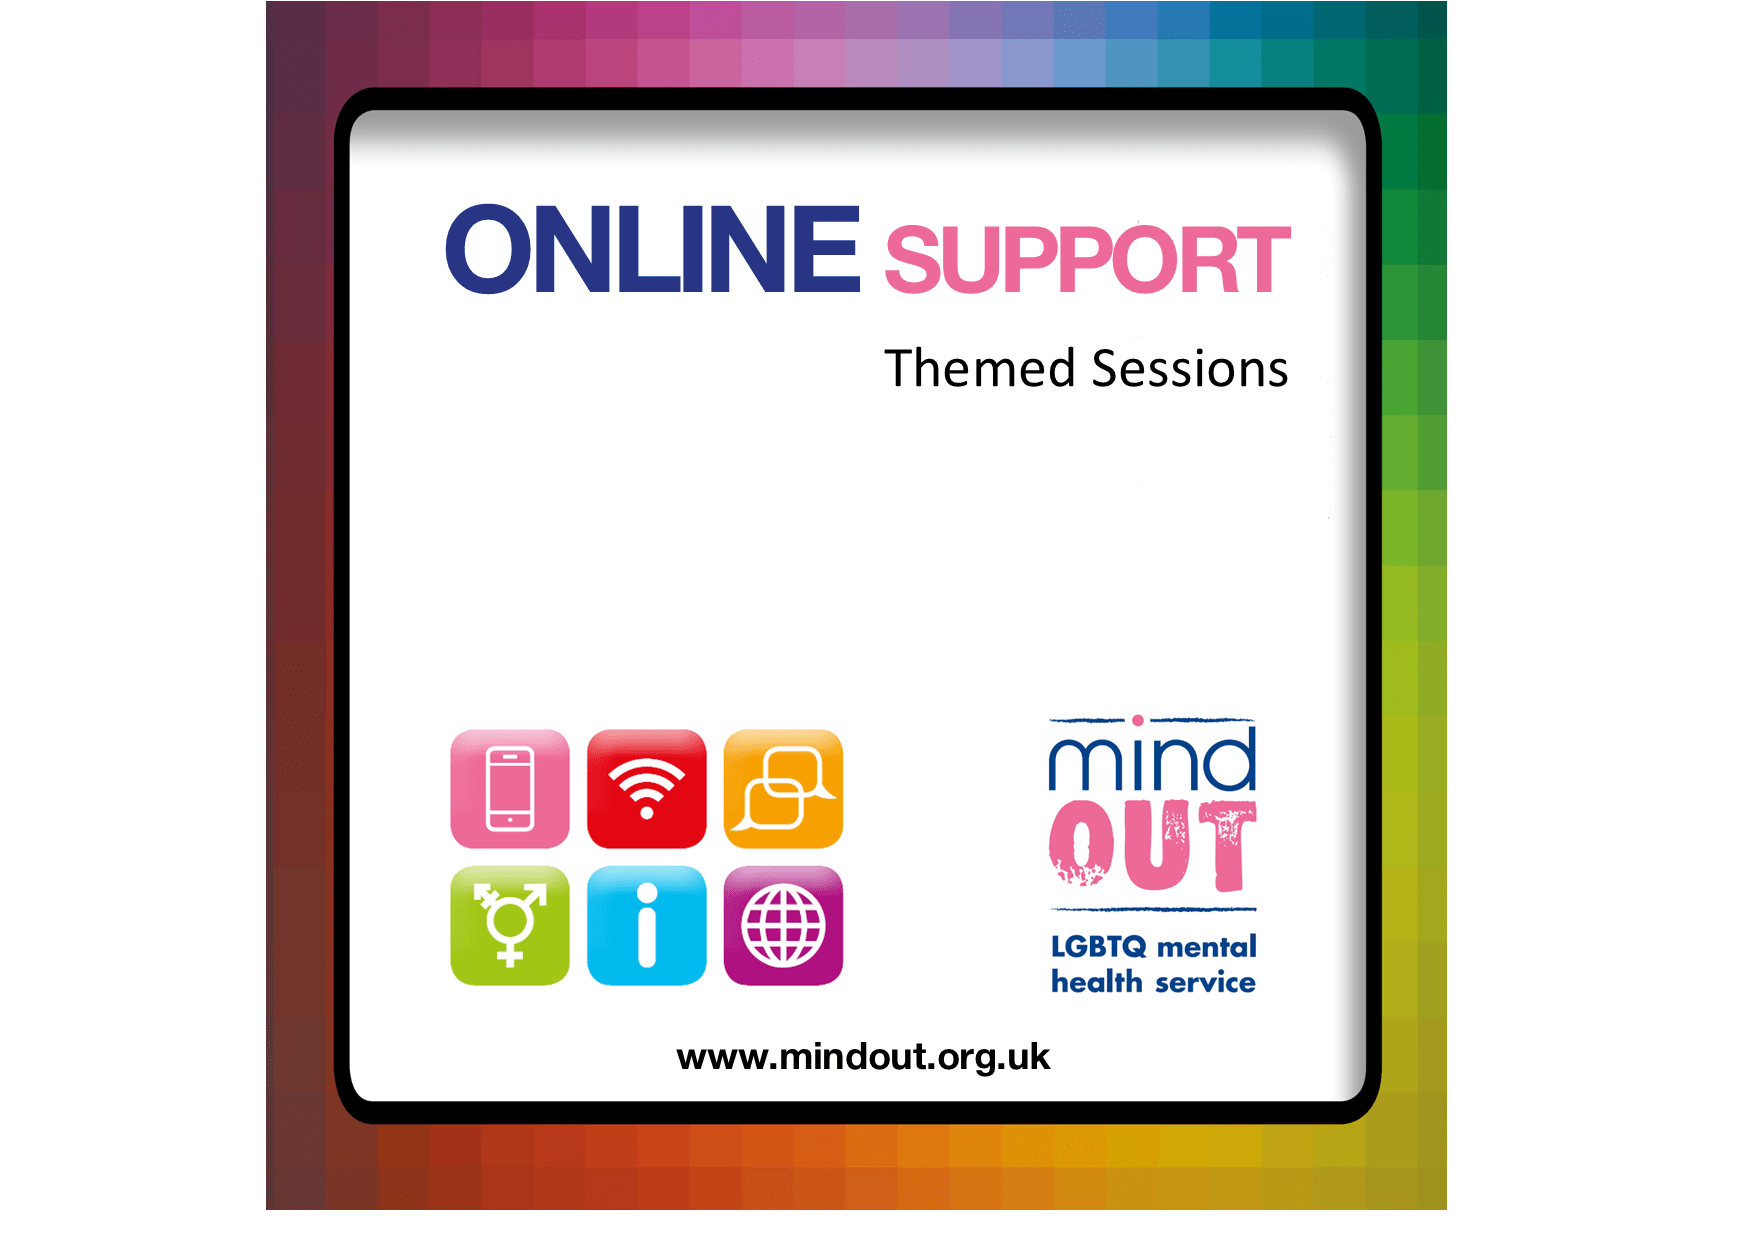 online support themed sessions with six colourful symbols and the mindout logo and the mindout logo